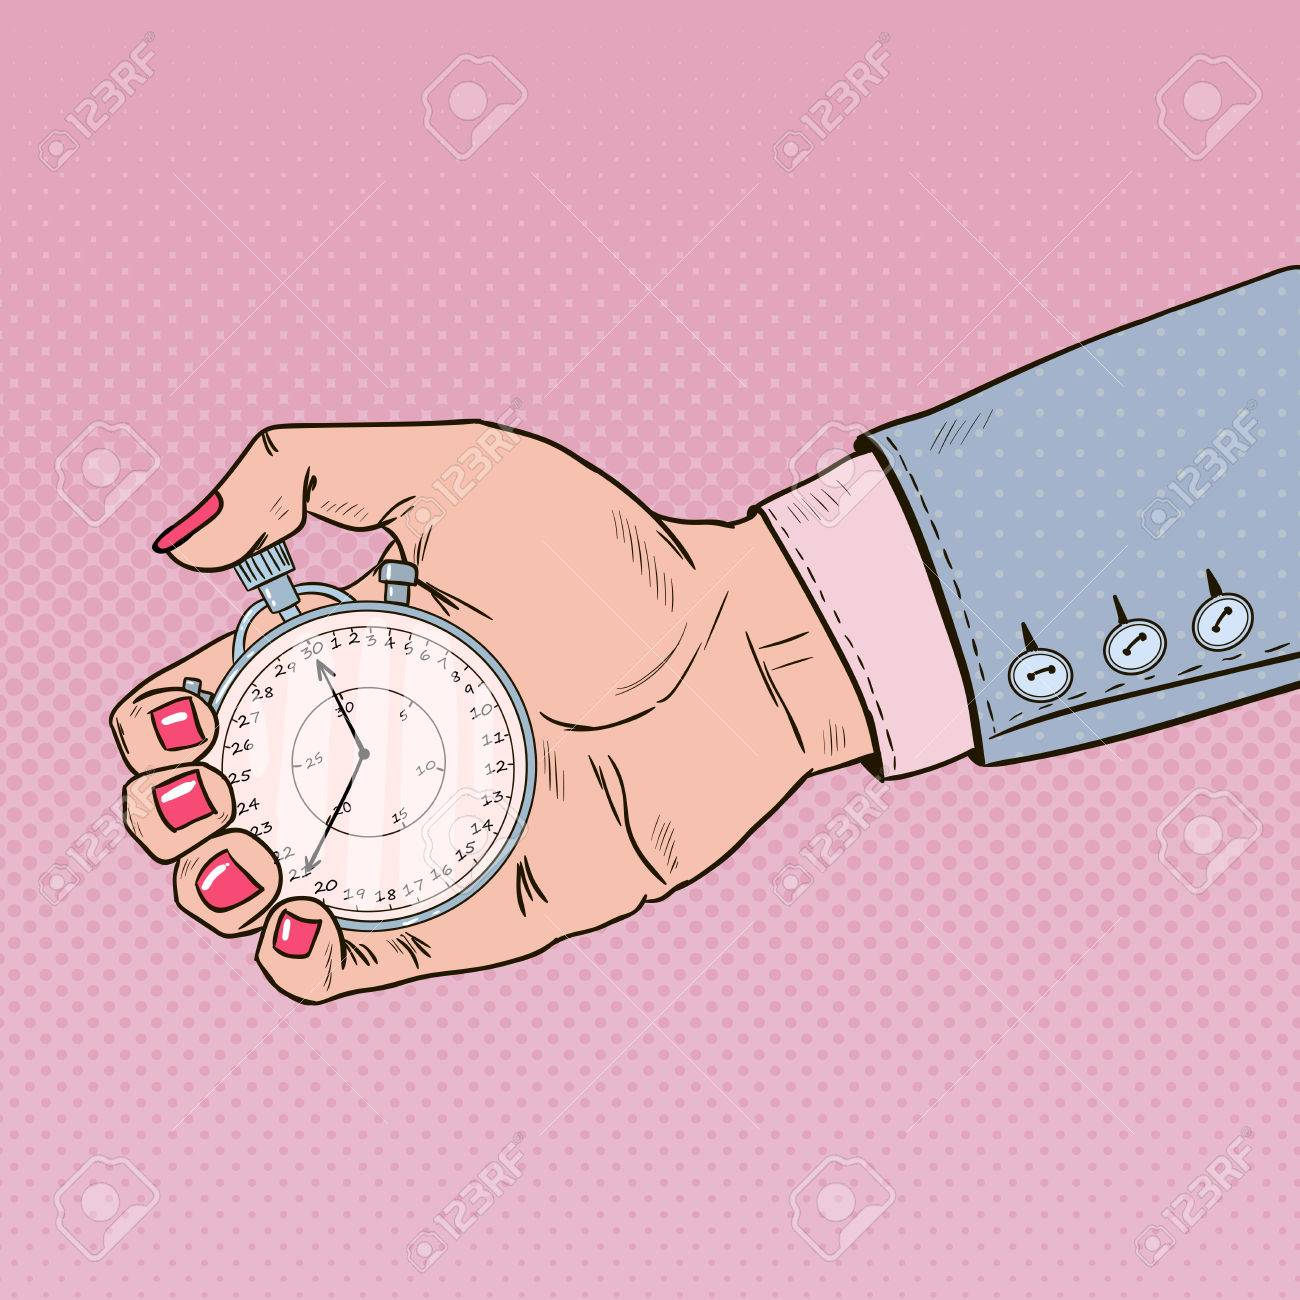 Female Hand Holding Stopwatch. Time Management. Pop Art retro illustration Standard-Bild - 75100045